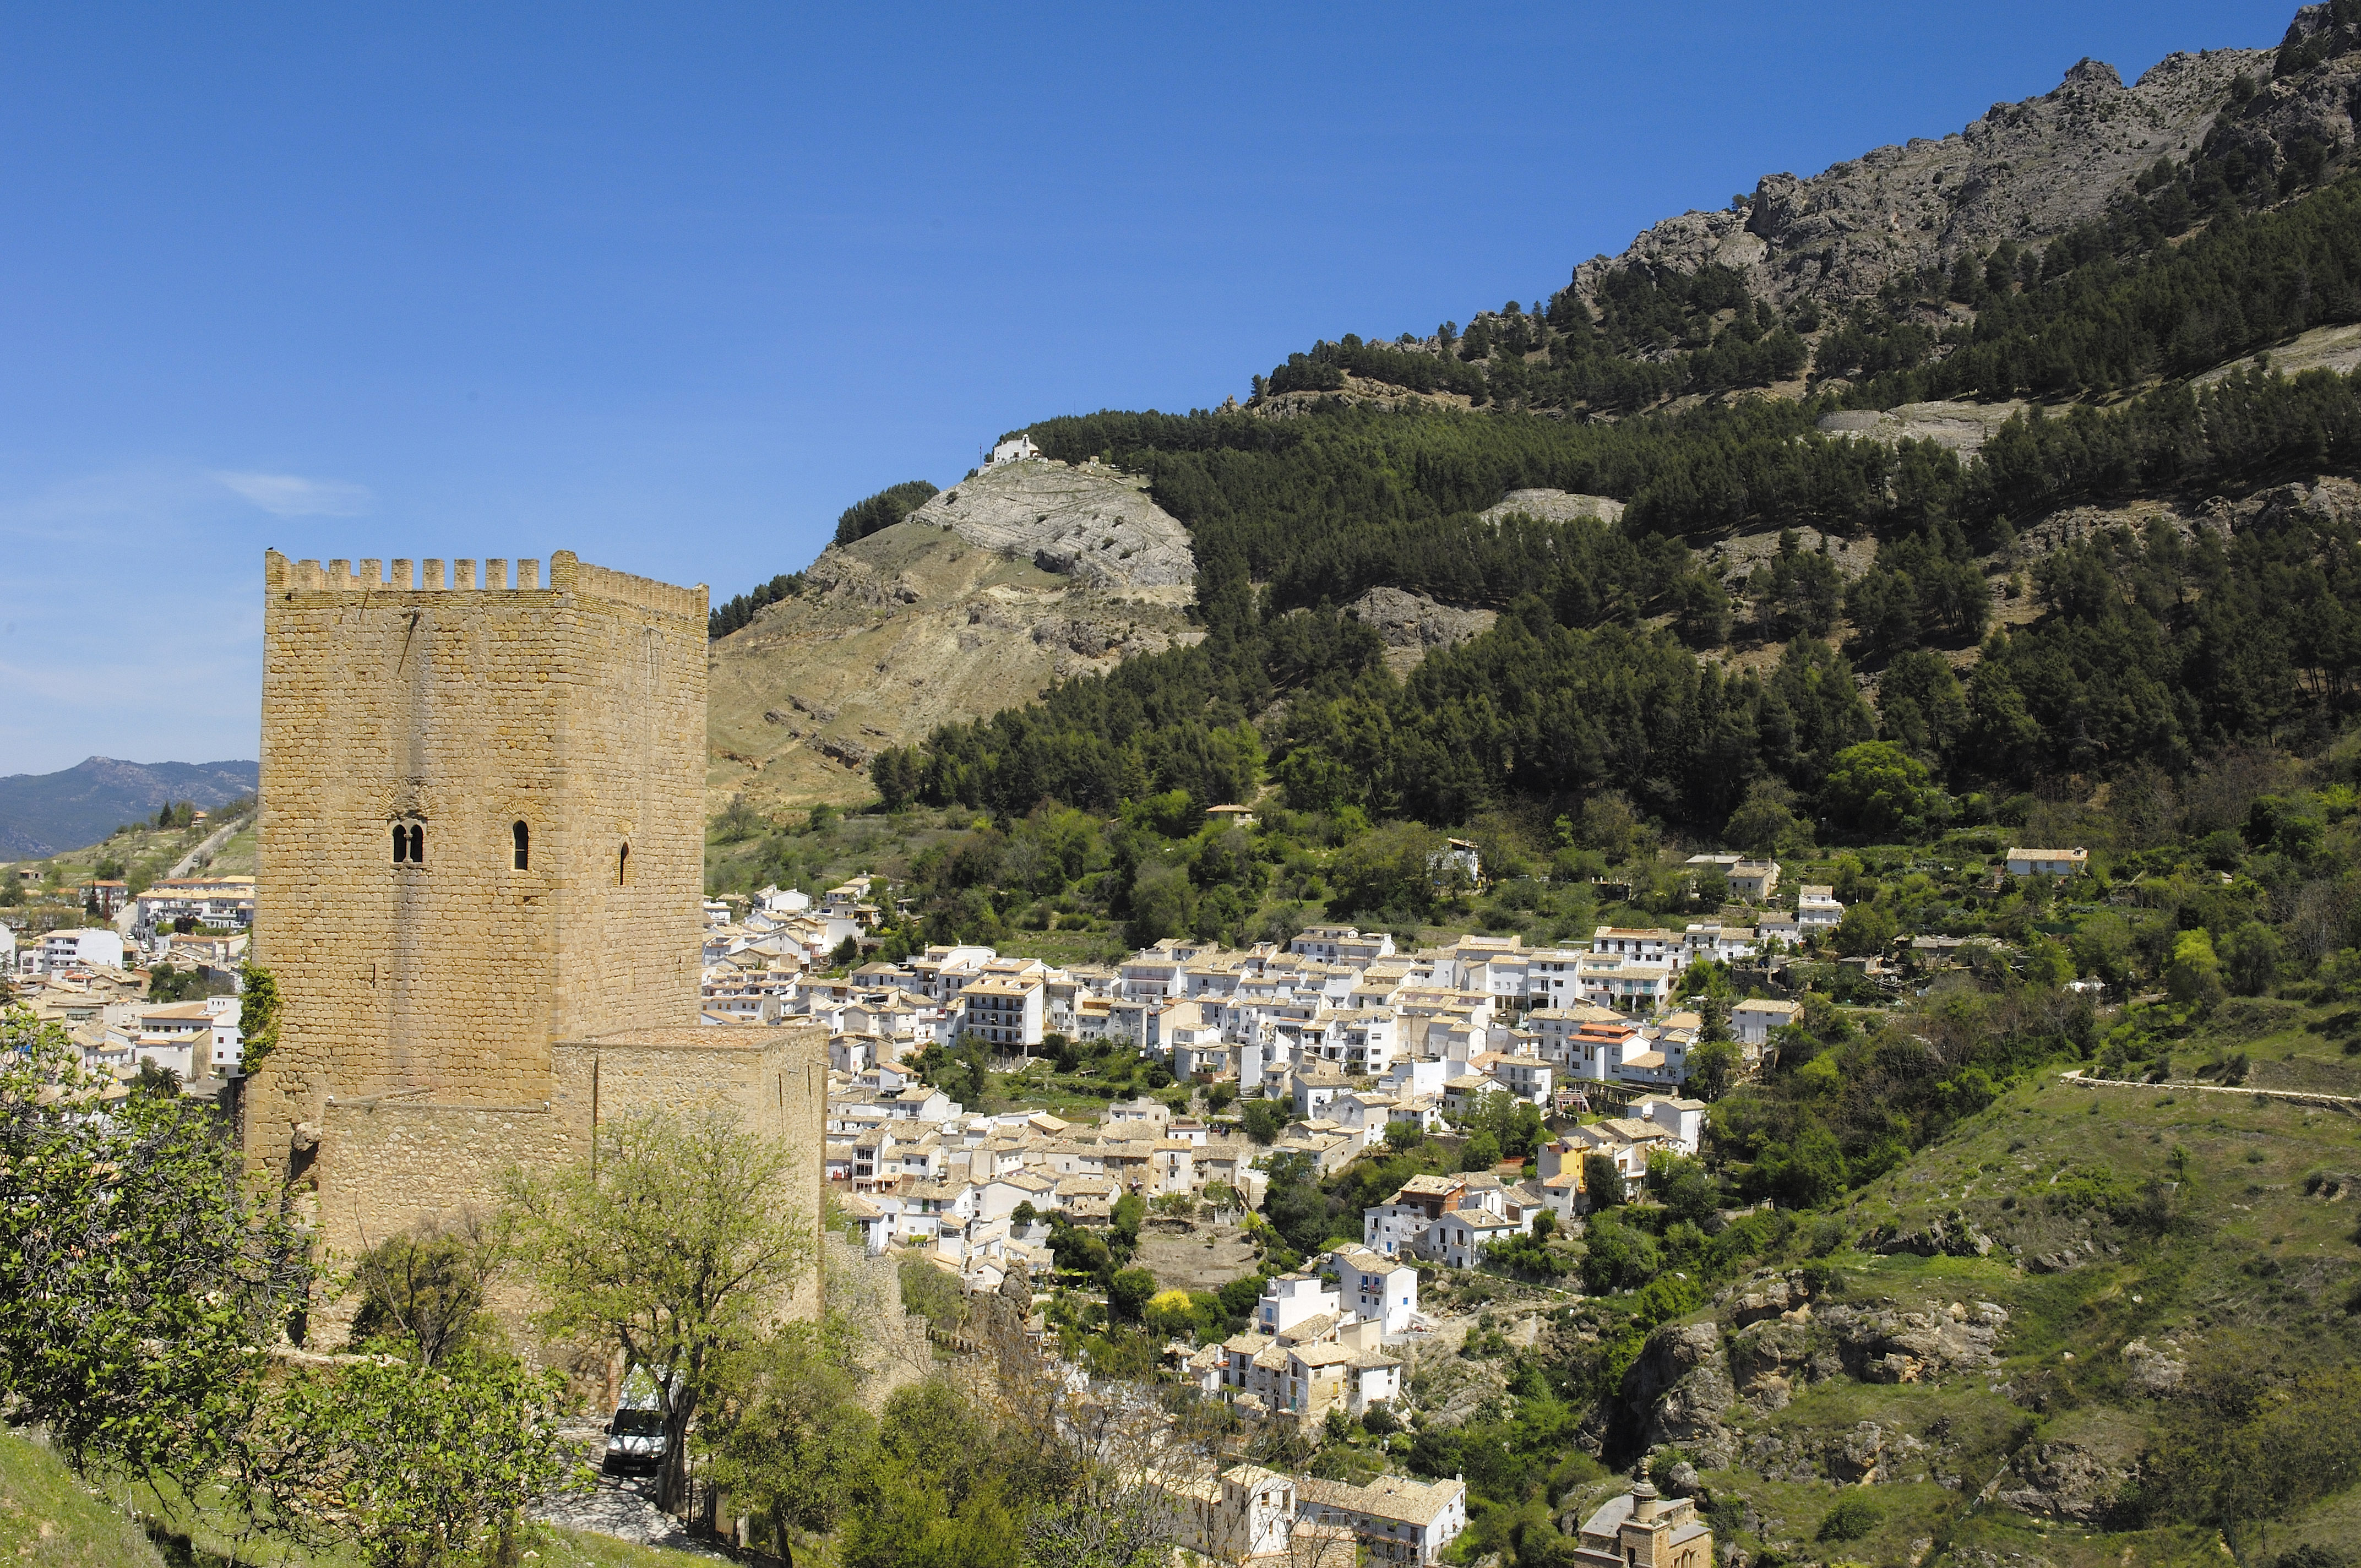 Yedra Castle, near the stage finish.